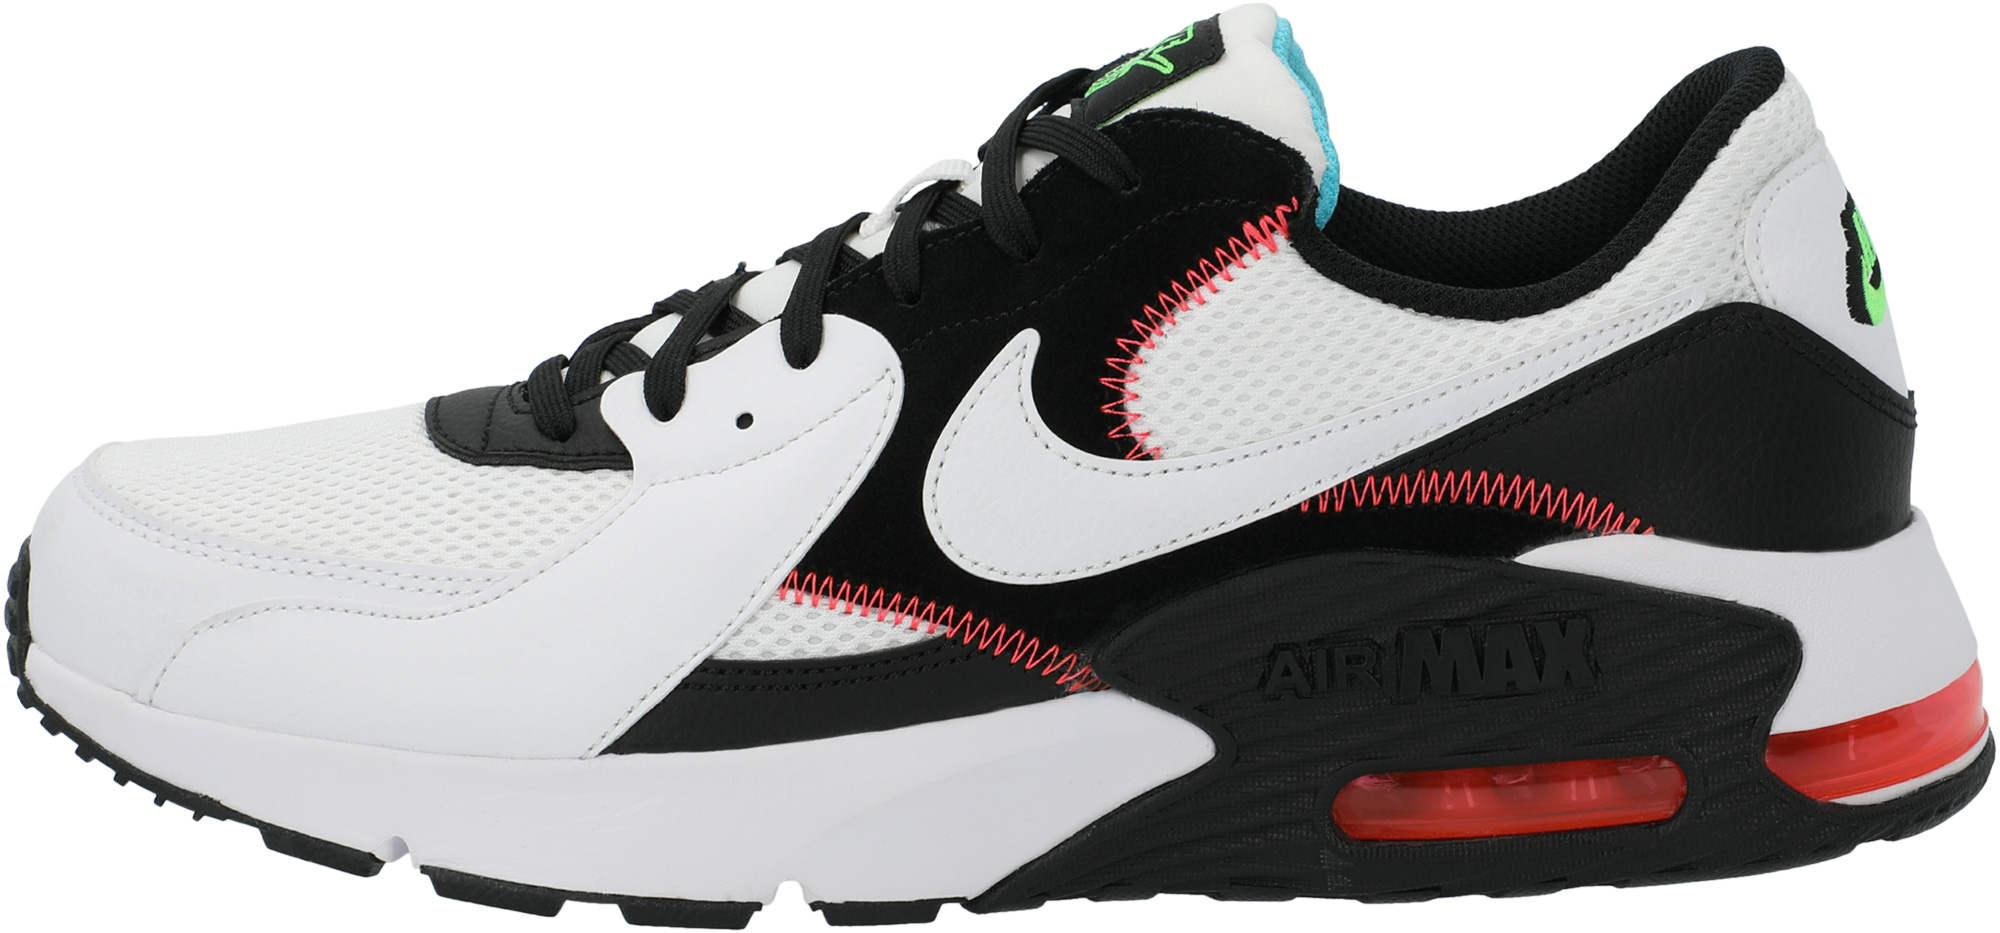 Nike Кроссовки мужские Nike Air Max Excee, размер 41 кроссовки nike nike ni464abbdqe1